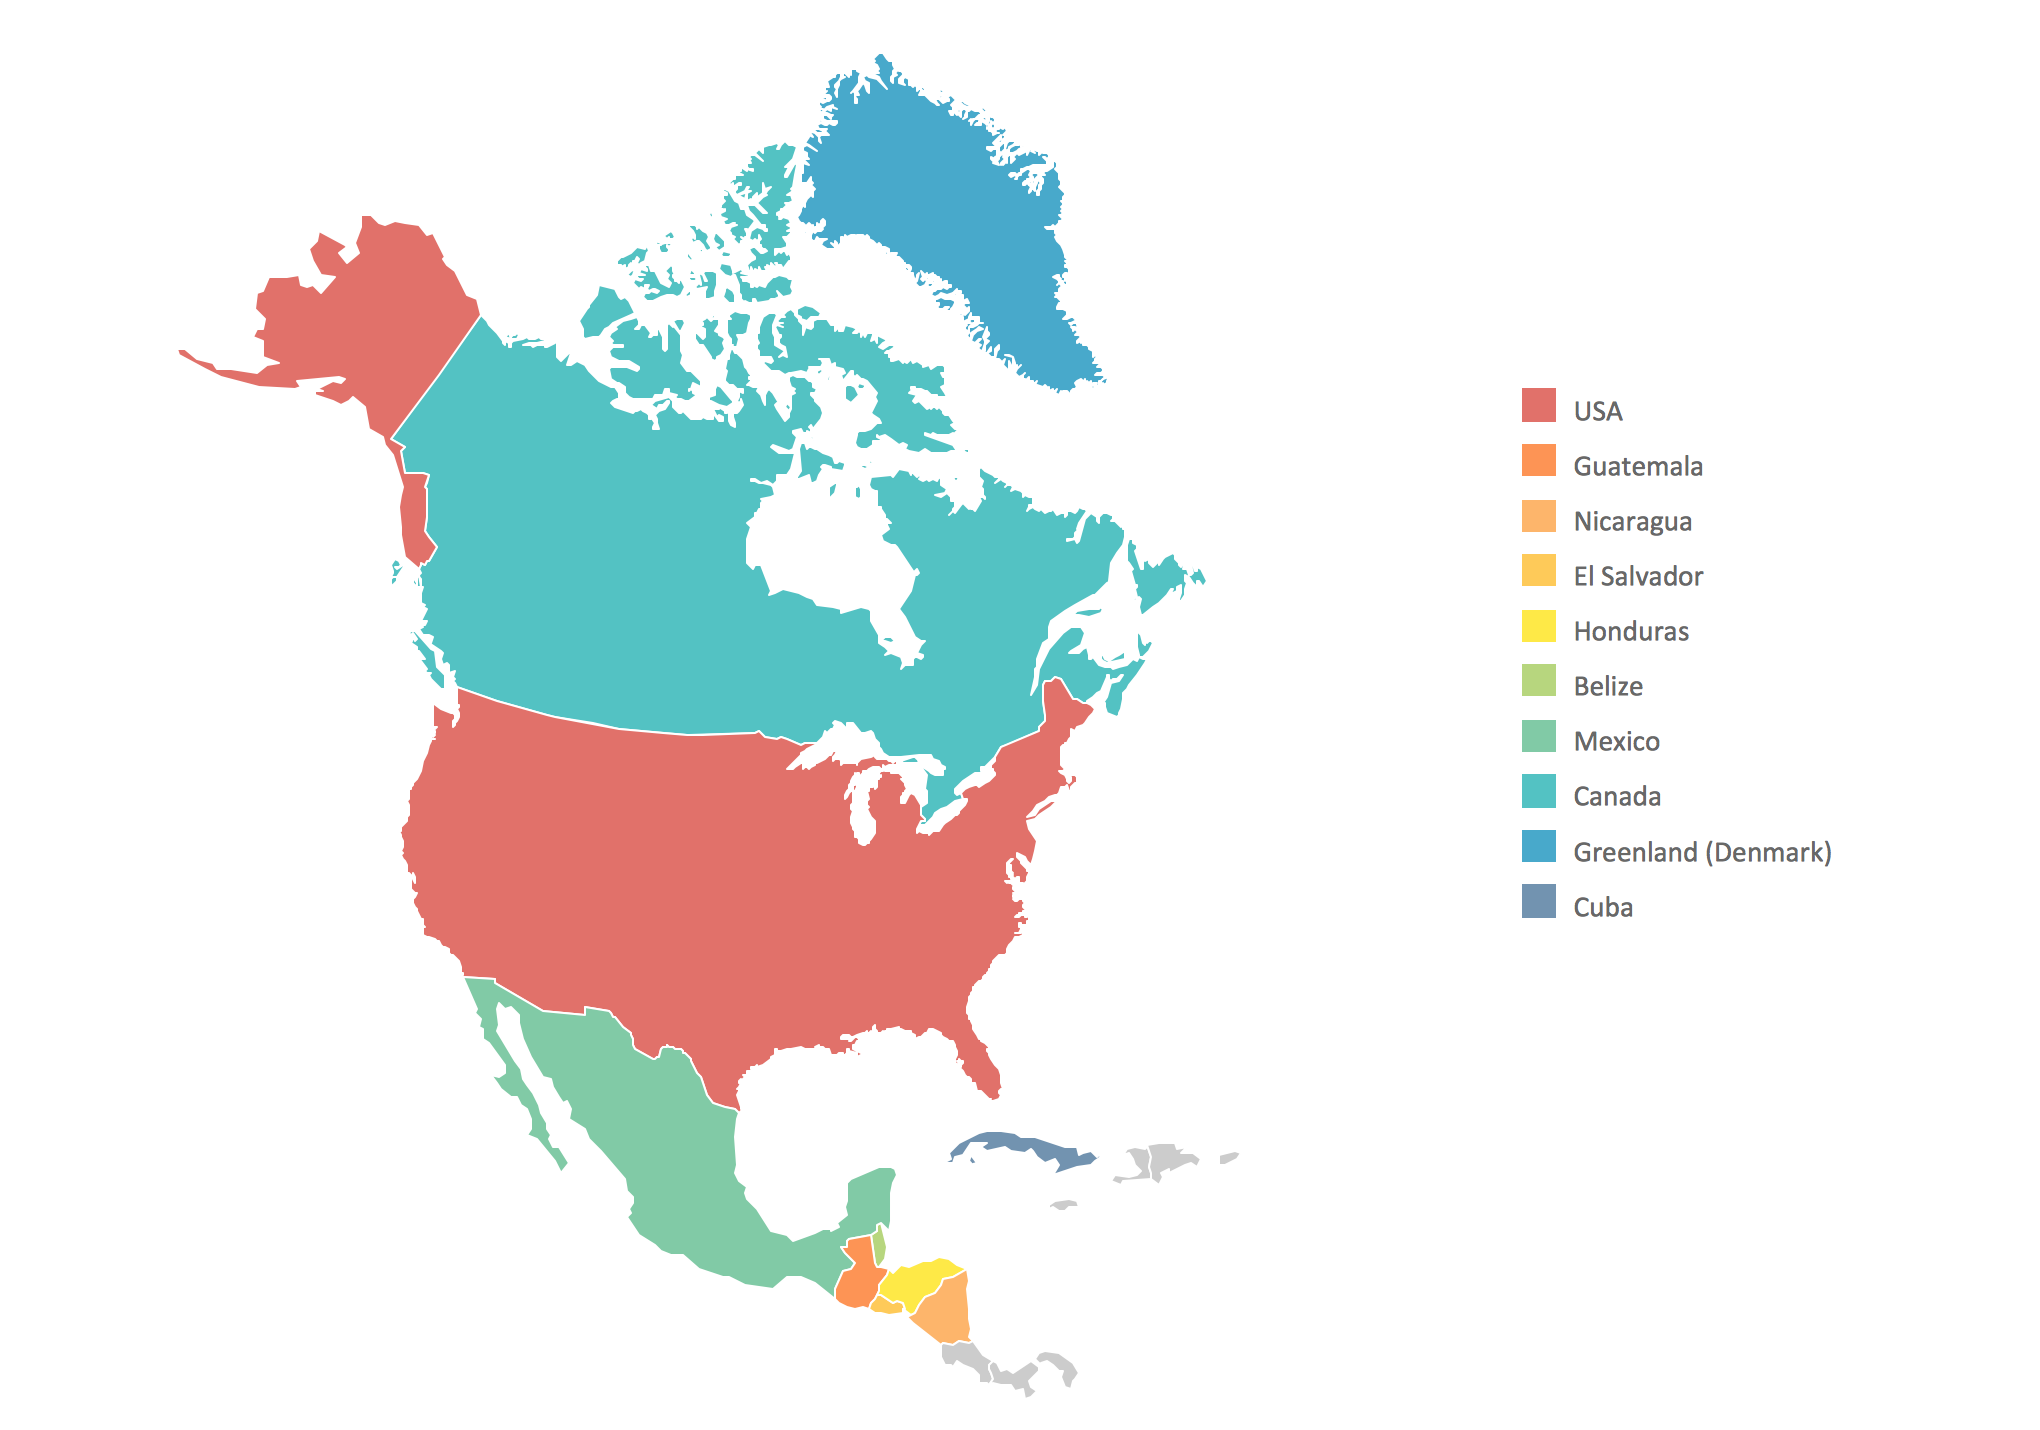 North America Free Maps Free Blank Maps Free Outline Maps Free Map Of America Free